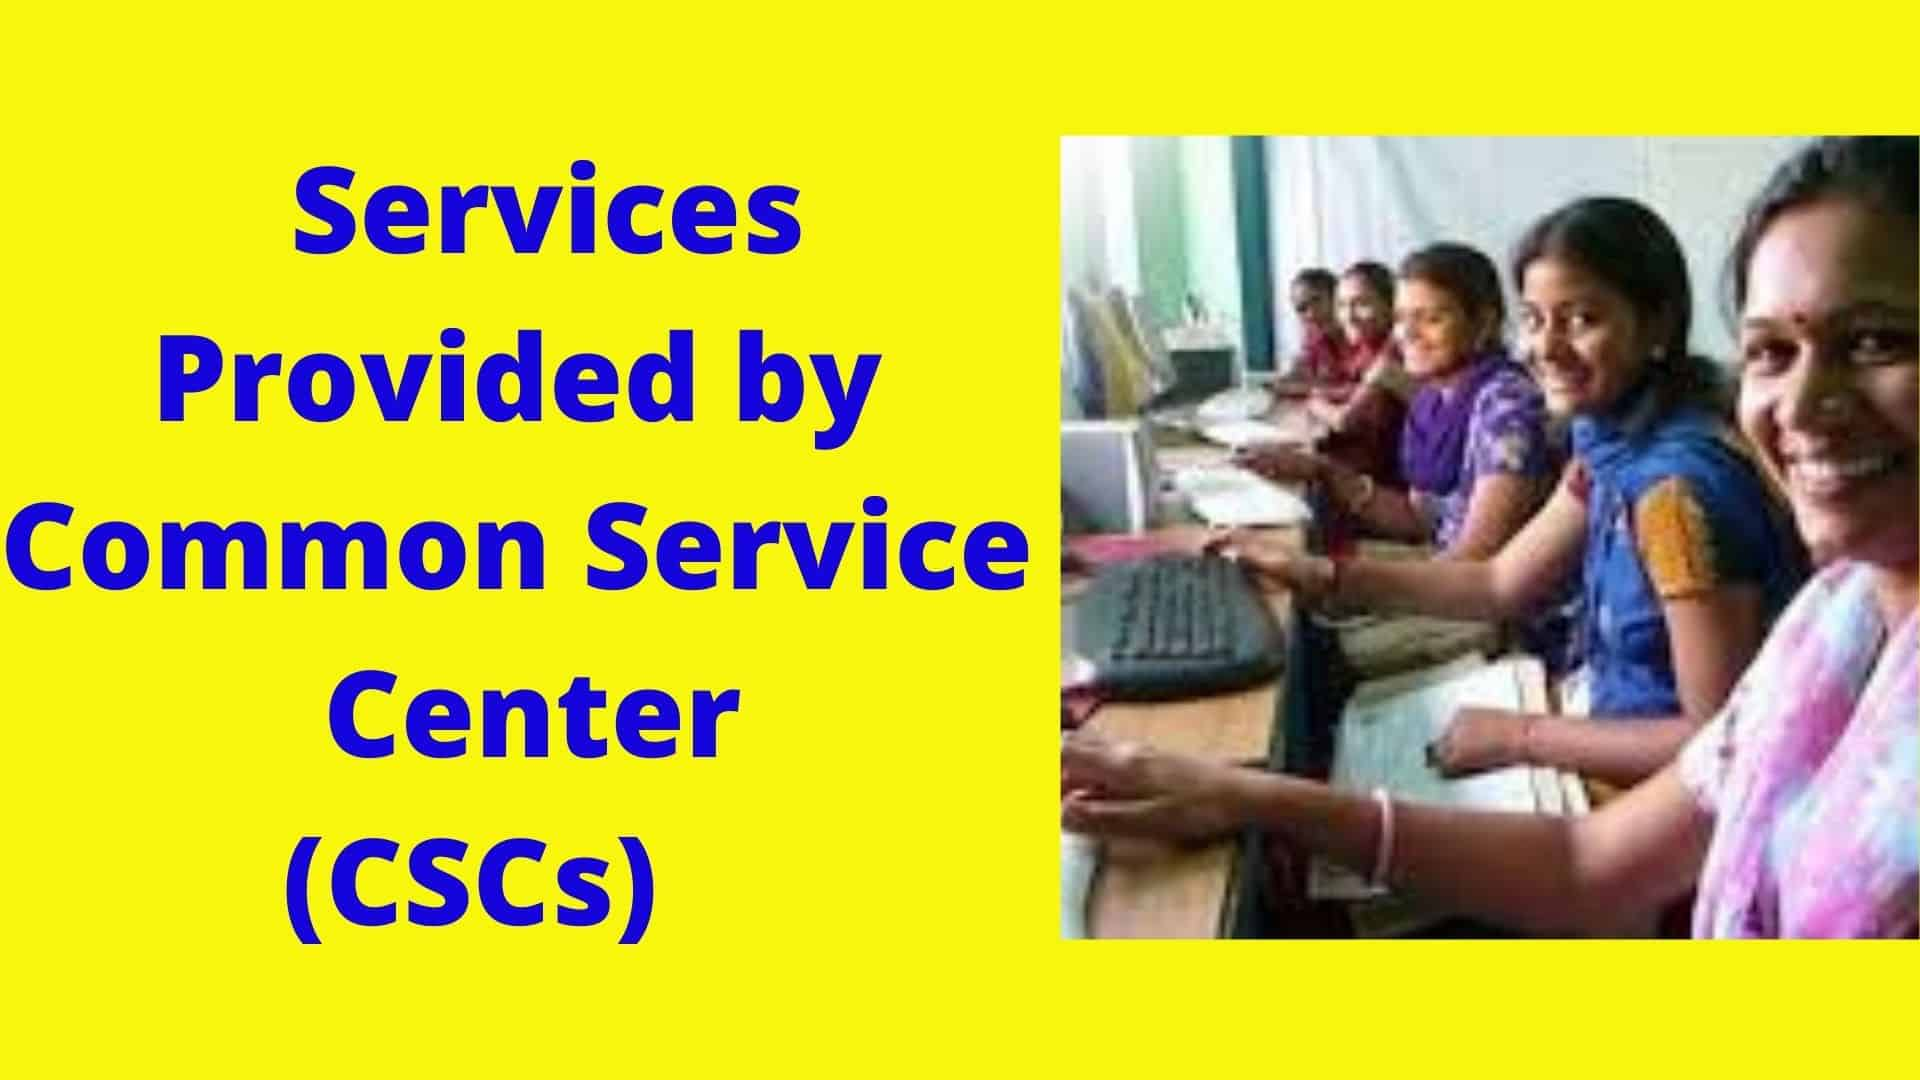 Services Provided by Common Service Center (CSCs)